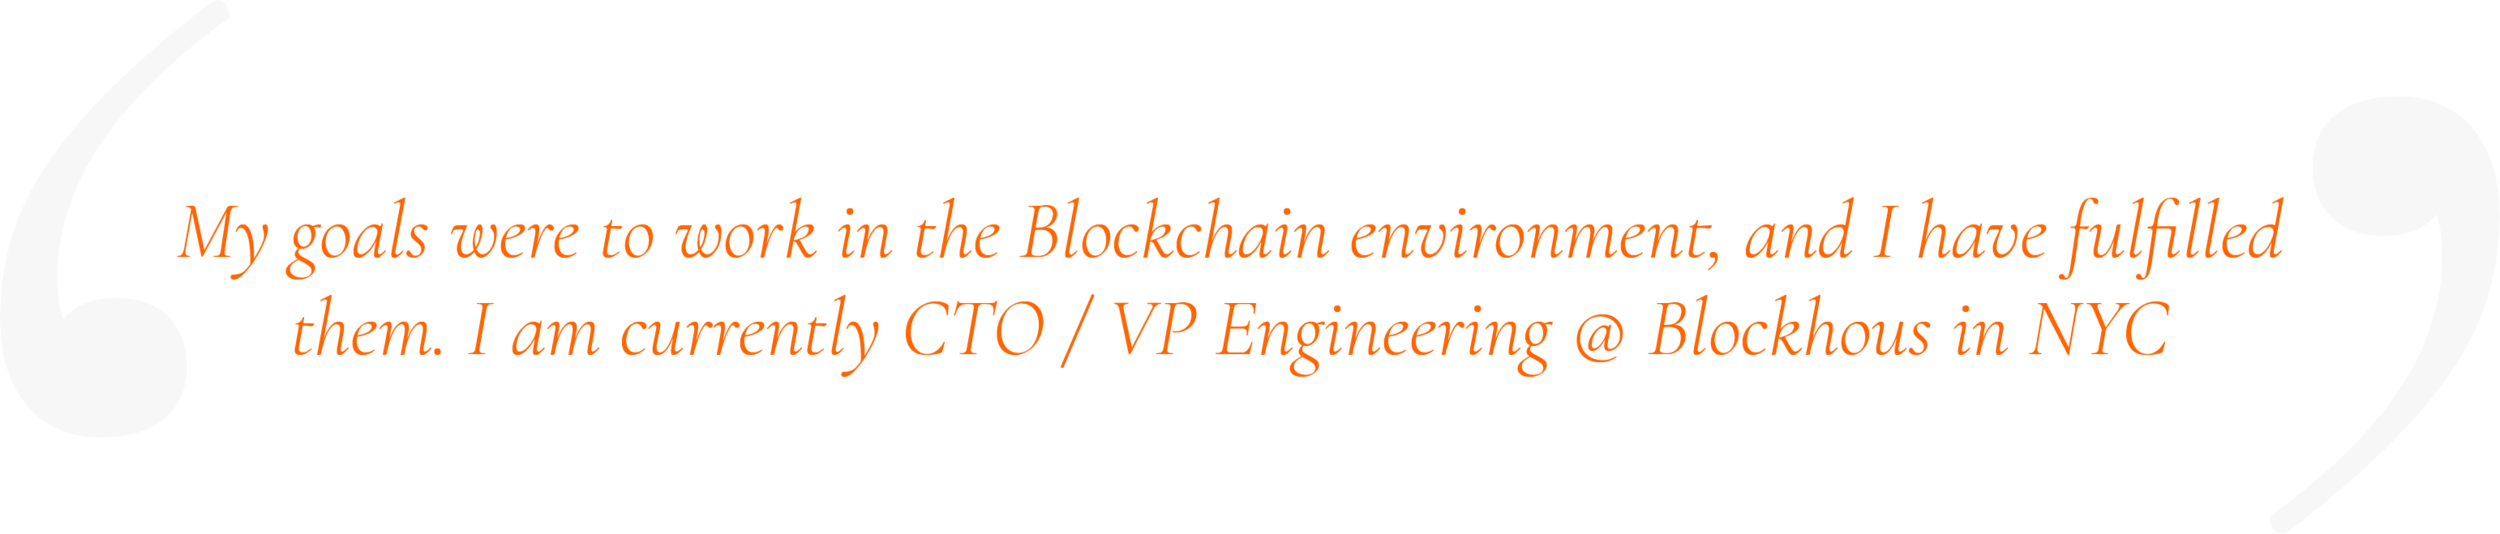 Stephane , Blockchain Technical Bootcamp Graduate, now Blockchain Startup CTO